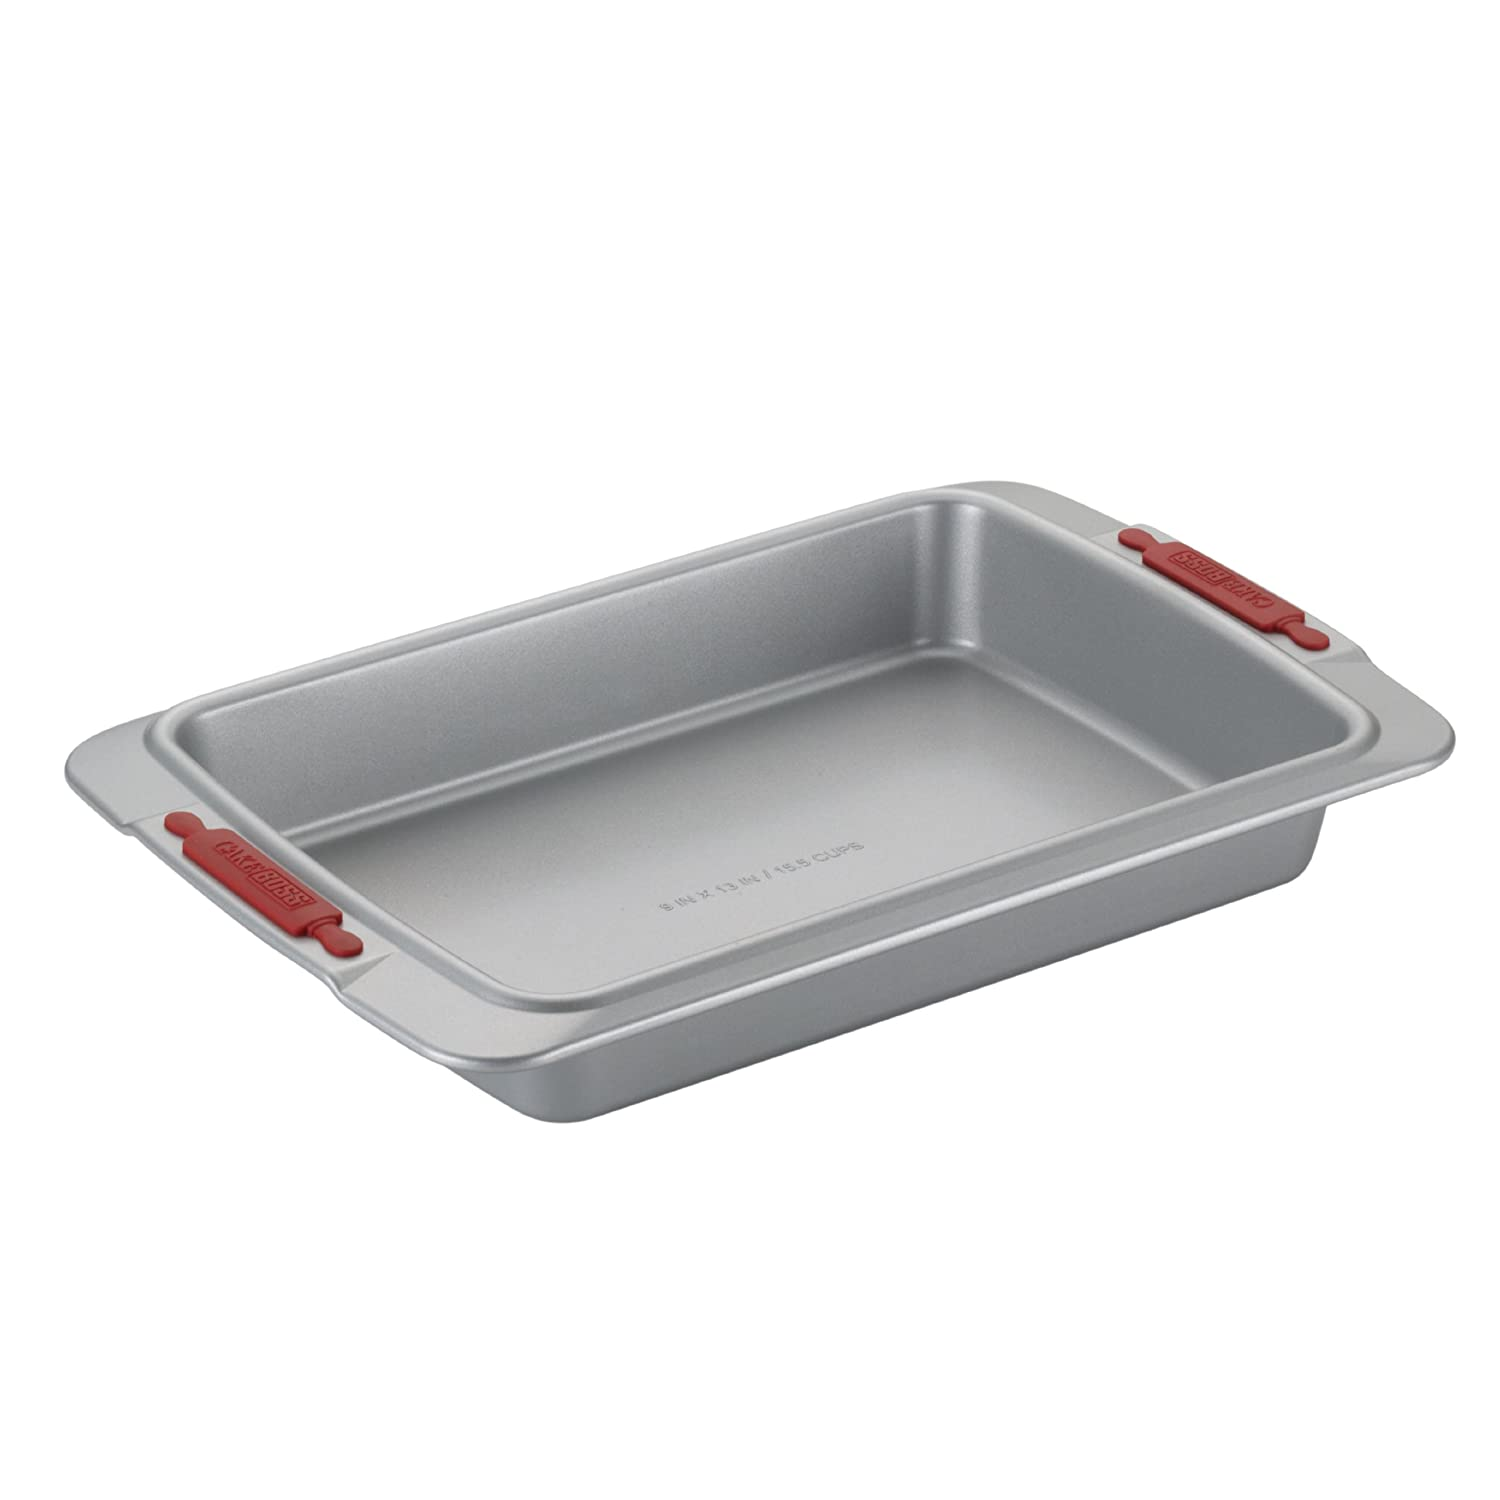 Cake Boss Deluxe Nonstick Bakeware 9-Inch by 13-Inch Cake Pan, Gray with Red Silicone Grips Meyer 59433